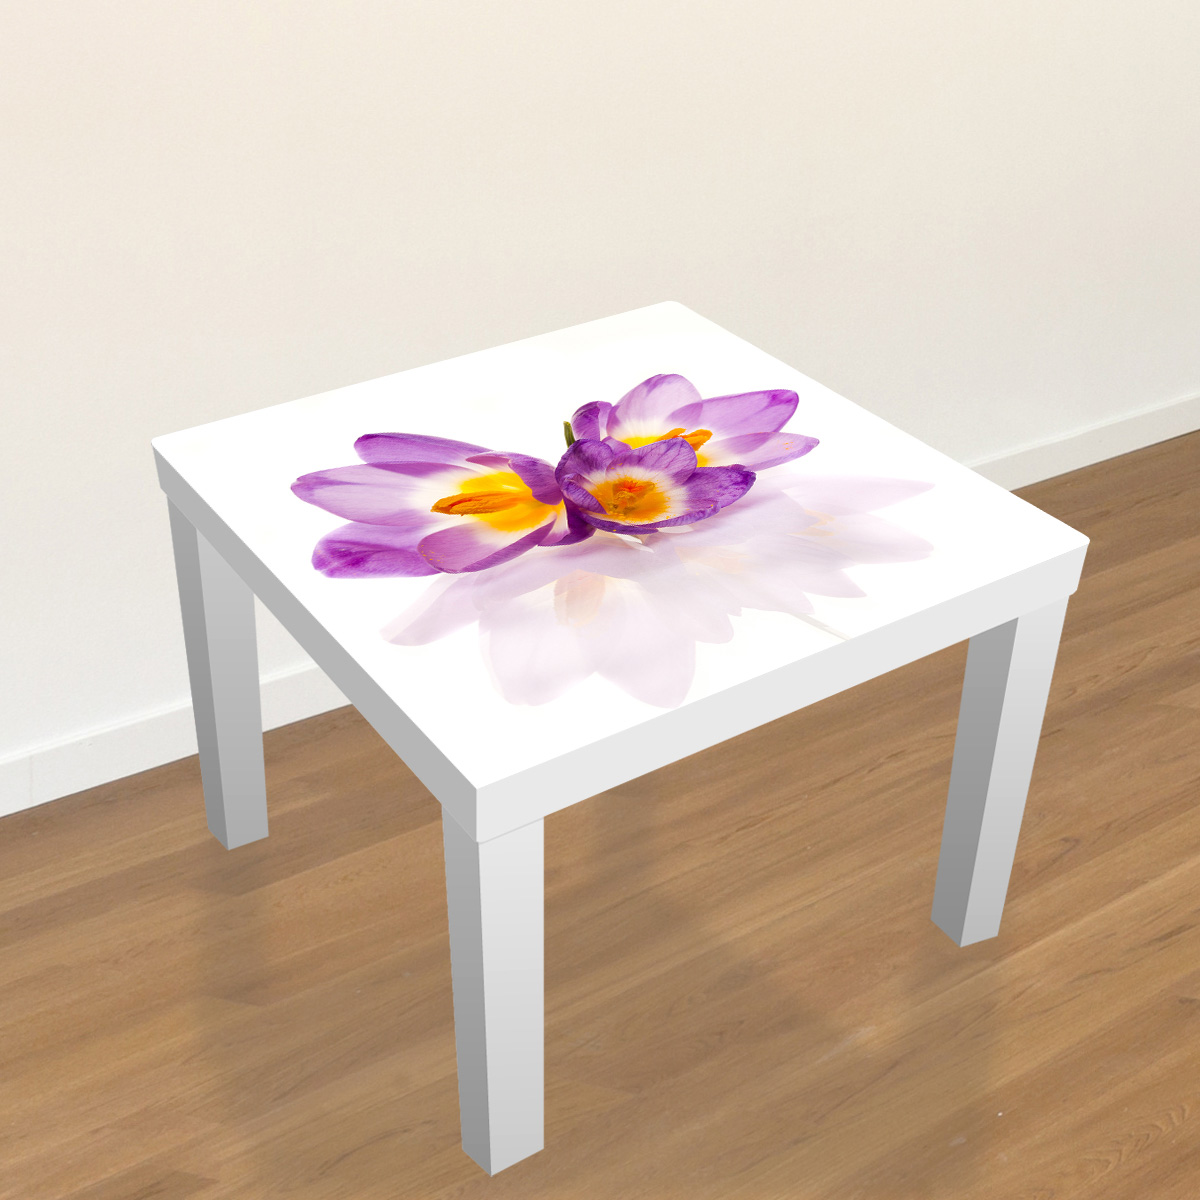 stickers meubles ikea stickers meubles ikea crocus ambiance. Black Bedroom Furniture Sets. Home Design Ideas